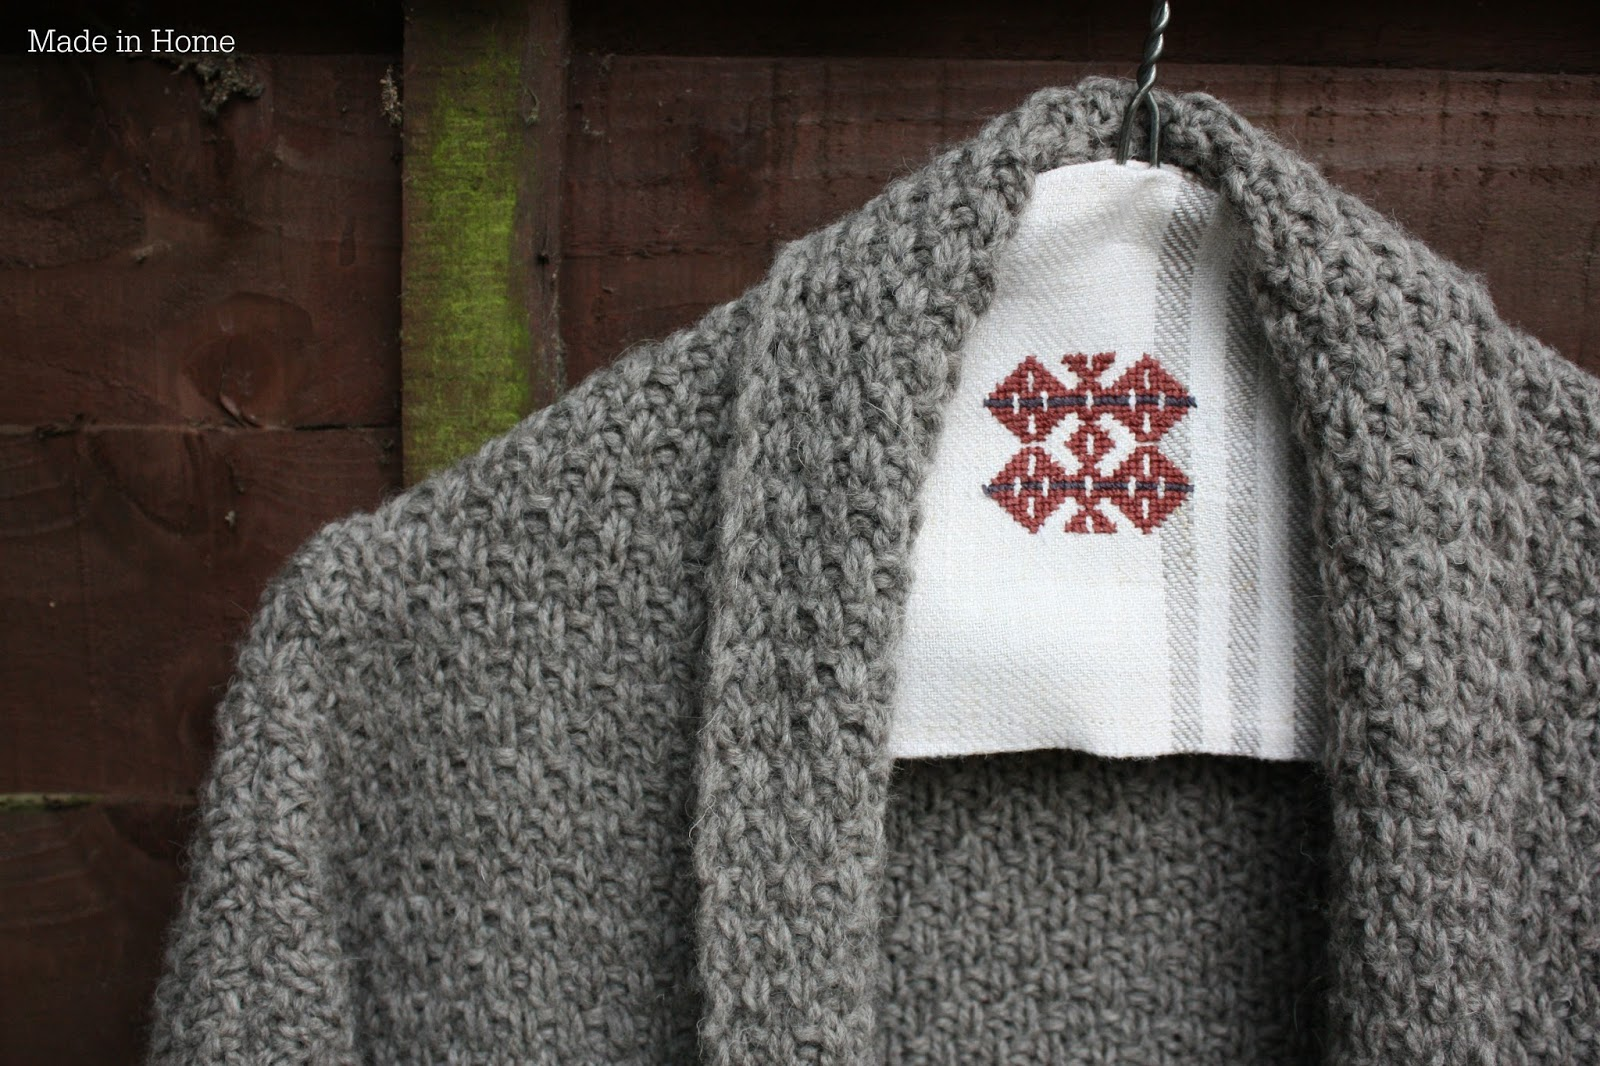 Made in Home: The Double Moss Stitch Cardigan :: Knitting